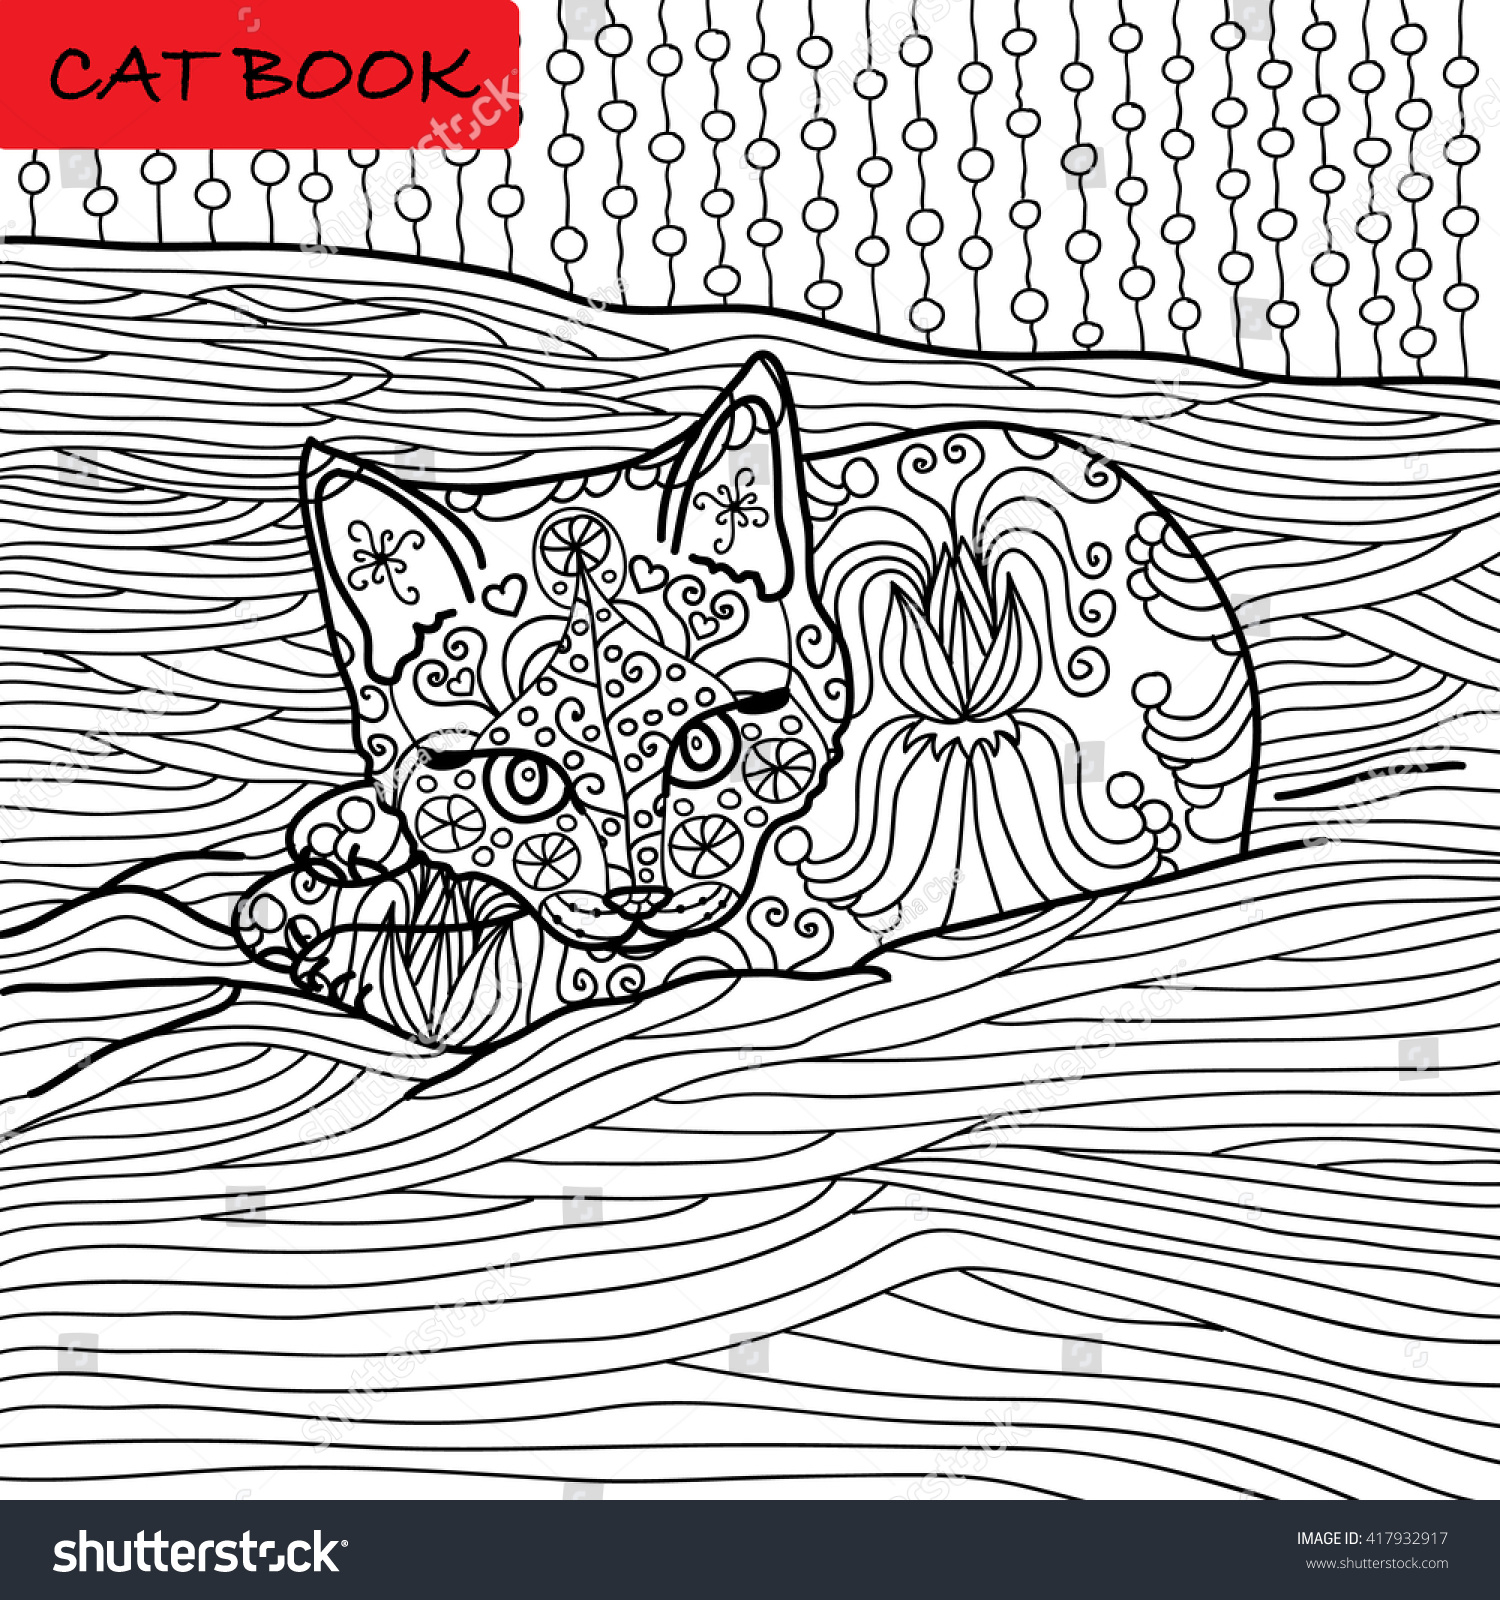 Coloring Cat Page For Adults Adorable Baby Kitten Lying On The Sofa Hand Drawn